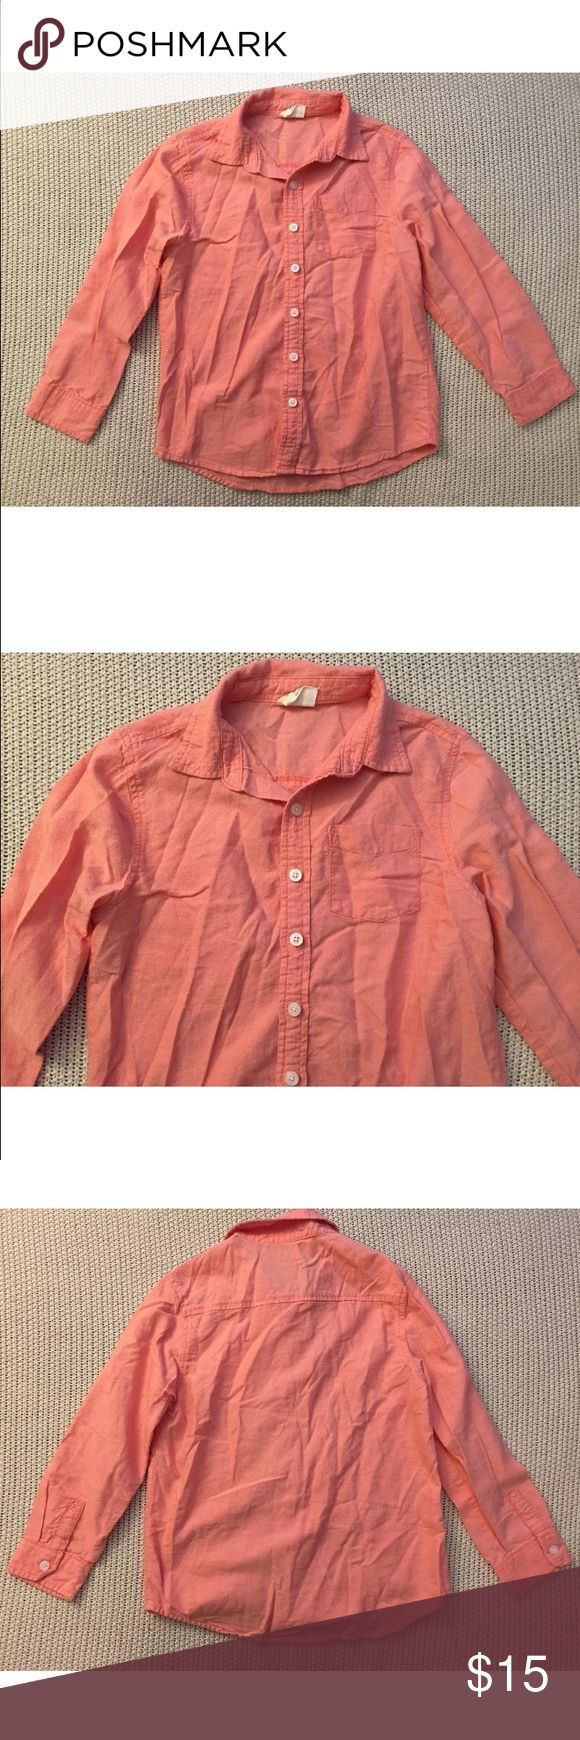 Crazy 8 Coral Shirt M (7-8) New. Coral button down shirt  100% cotton  M (7-8) Measured across: Shoulder to shoulder 13in (33cm) Armpit to armpit 16in (40.5cm) Waist 16in (40.5cm) Sleeve length 18.5in (47cm) Length 23in (58.5cm) crazy 8 Shirts & Tops Button Down Shirts